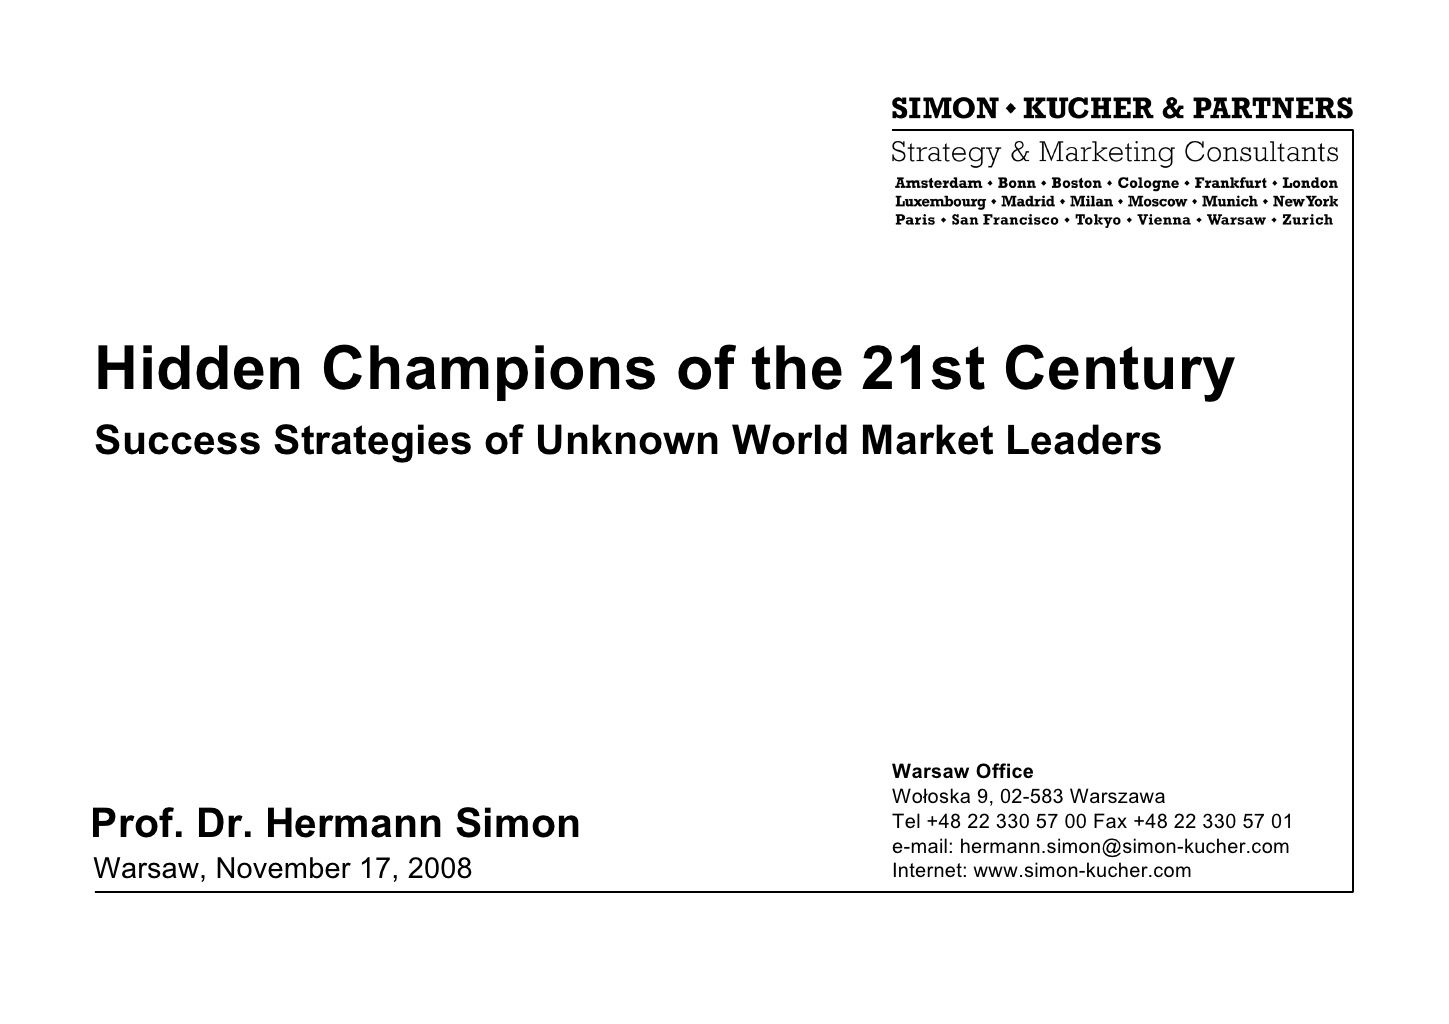 Hidden Champions Of The 21st Century Hermann Simon